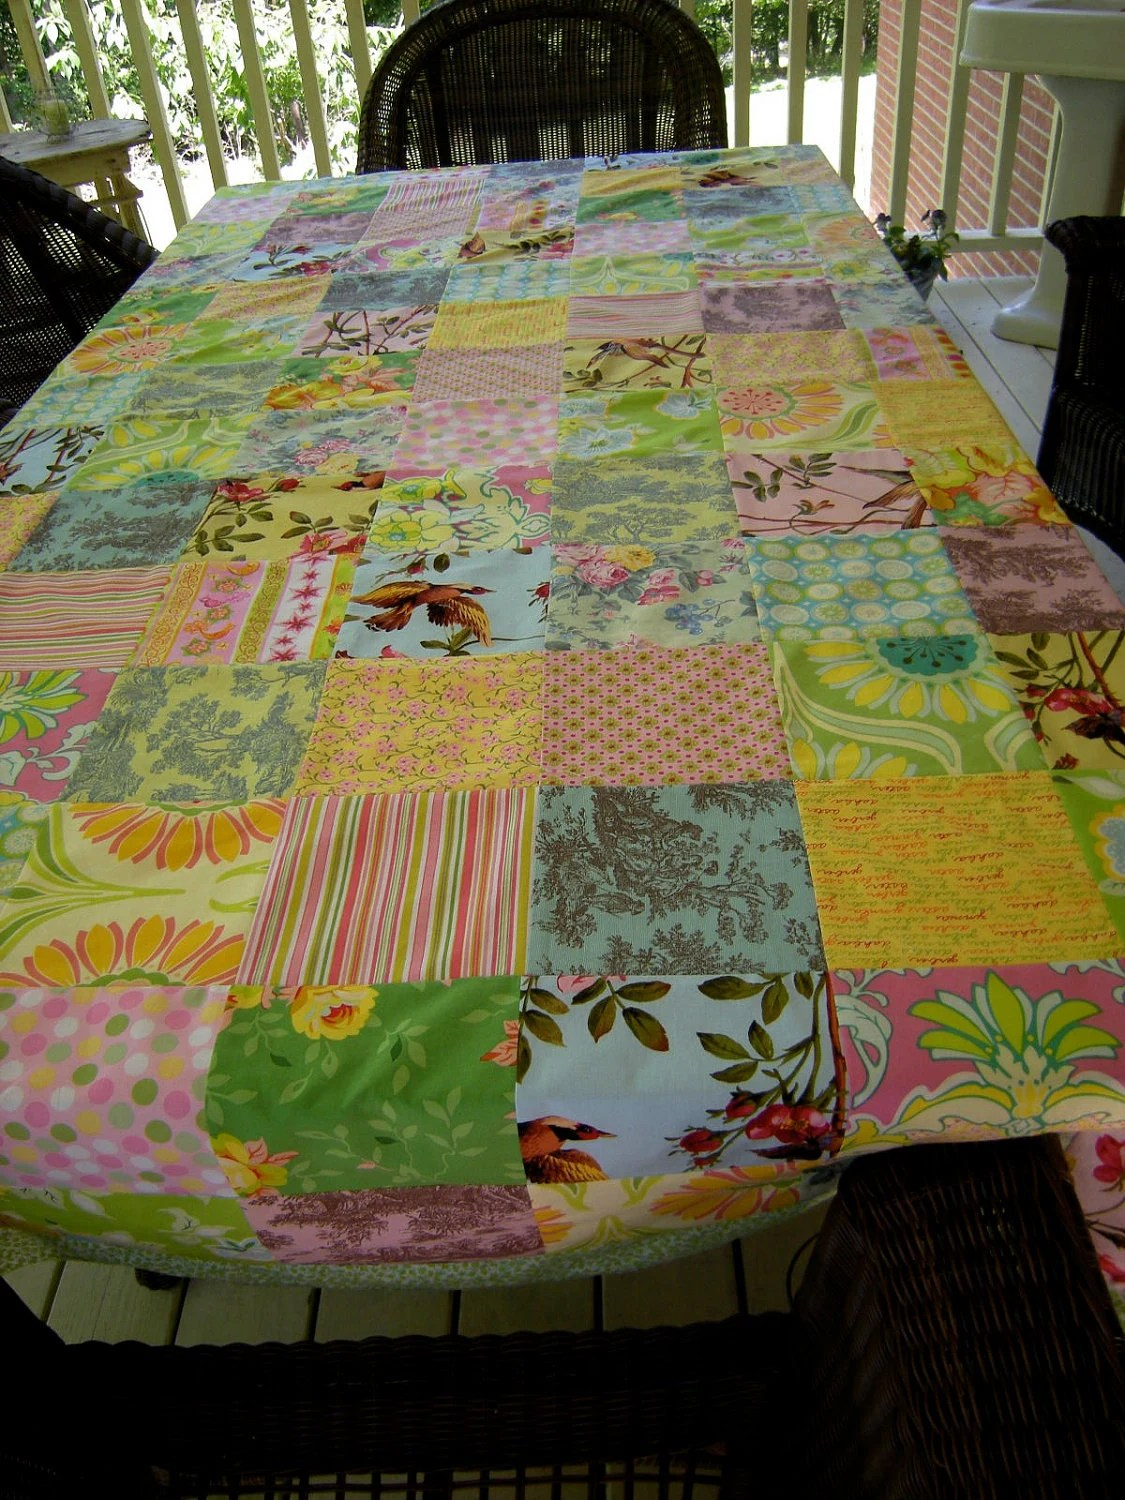 Cotton tablecloth, 60 X 89 inches, made up of 6 inch squares